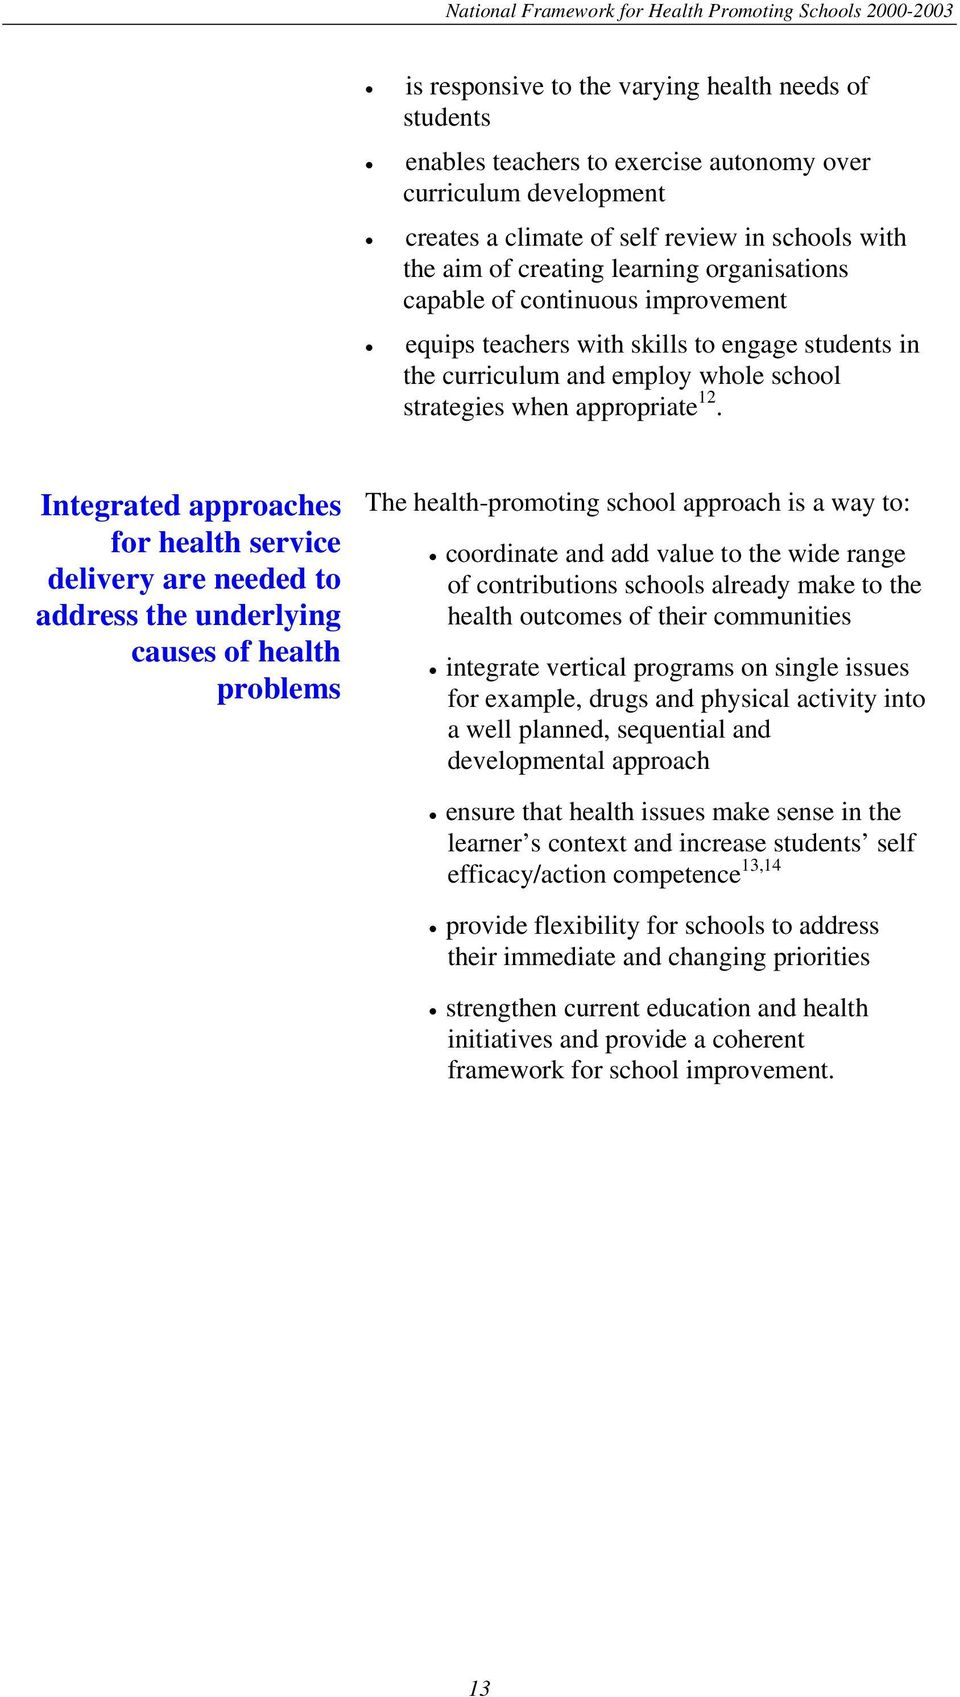 Integrated approaches for health service delivery are needed to address the underlying causes of health problems The health-promoting school approach is a way to: coordinate and add value to the wide